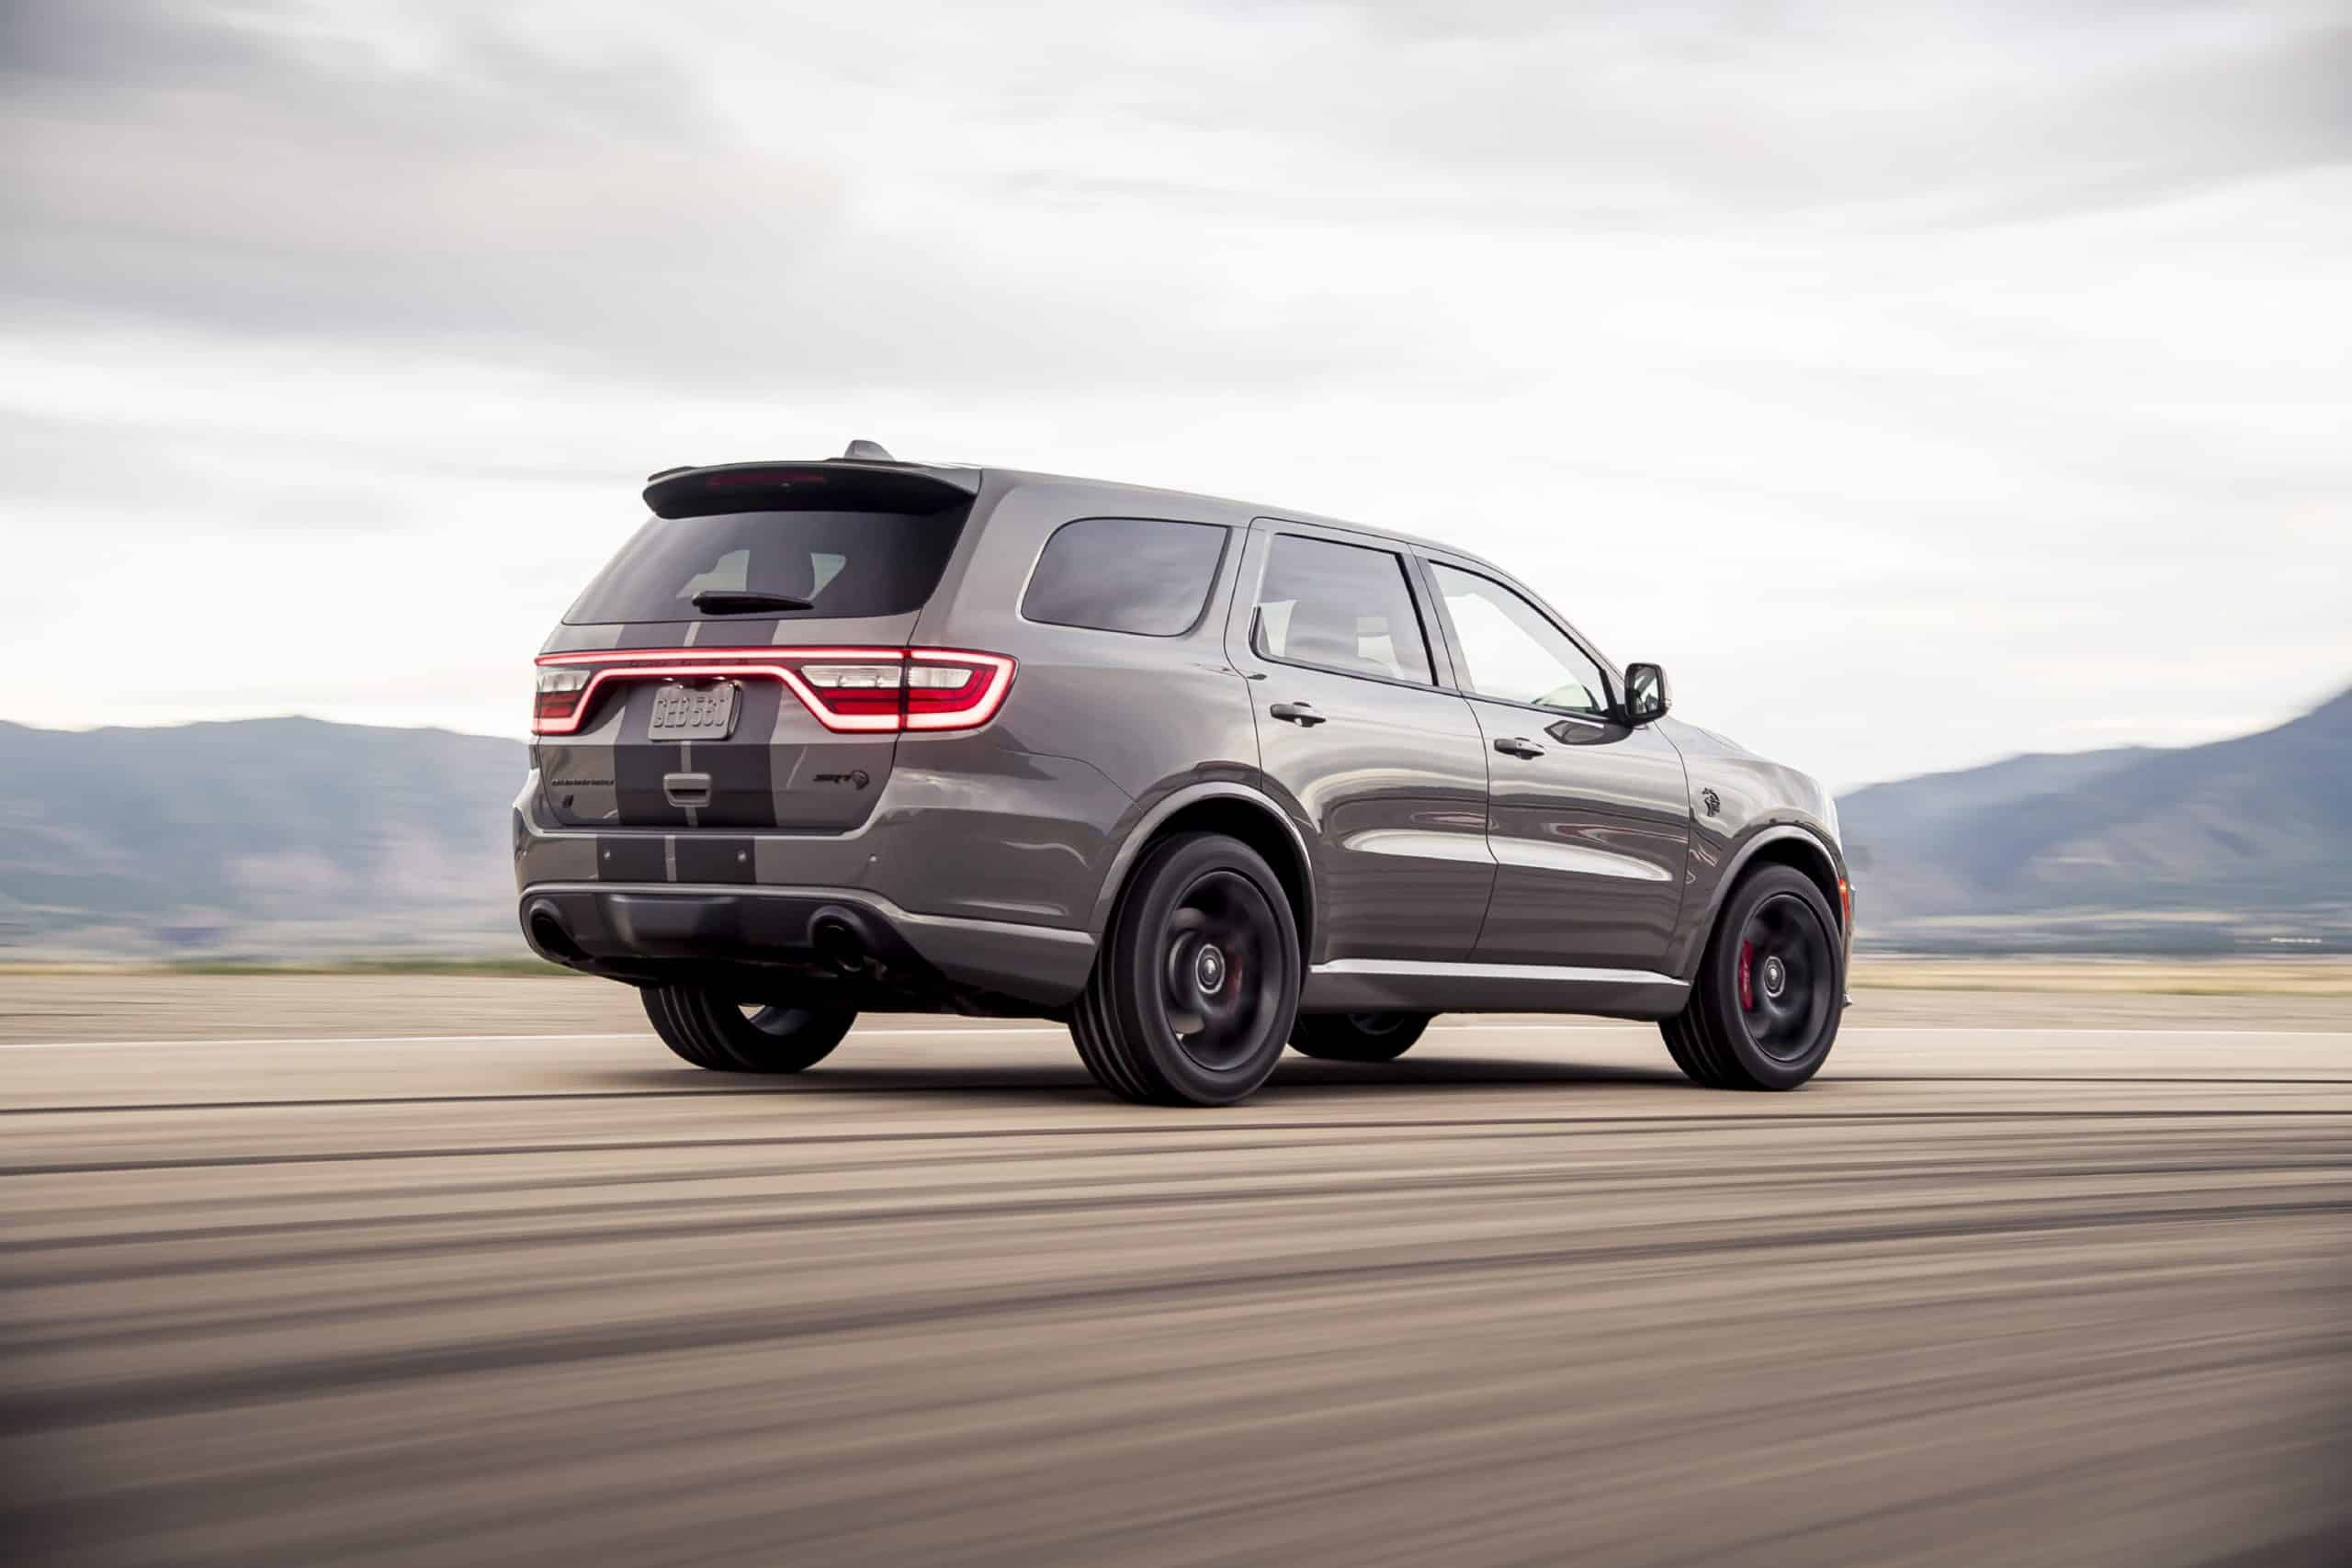 2021 Dodge Durango SRT Hellcat rear three quarter